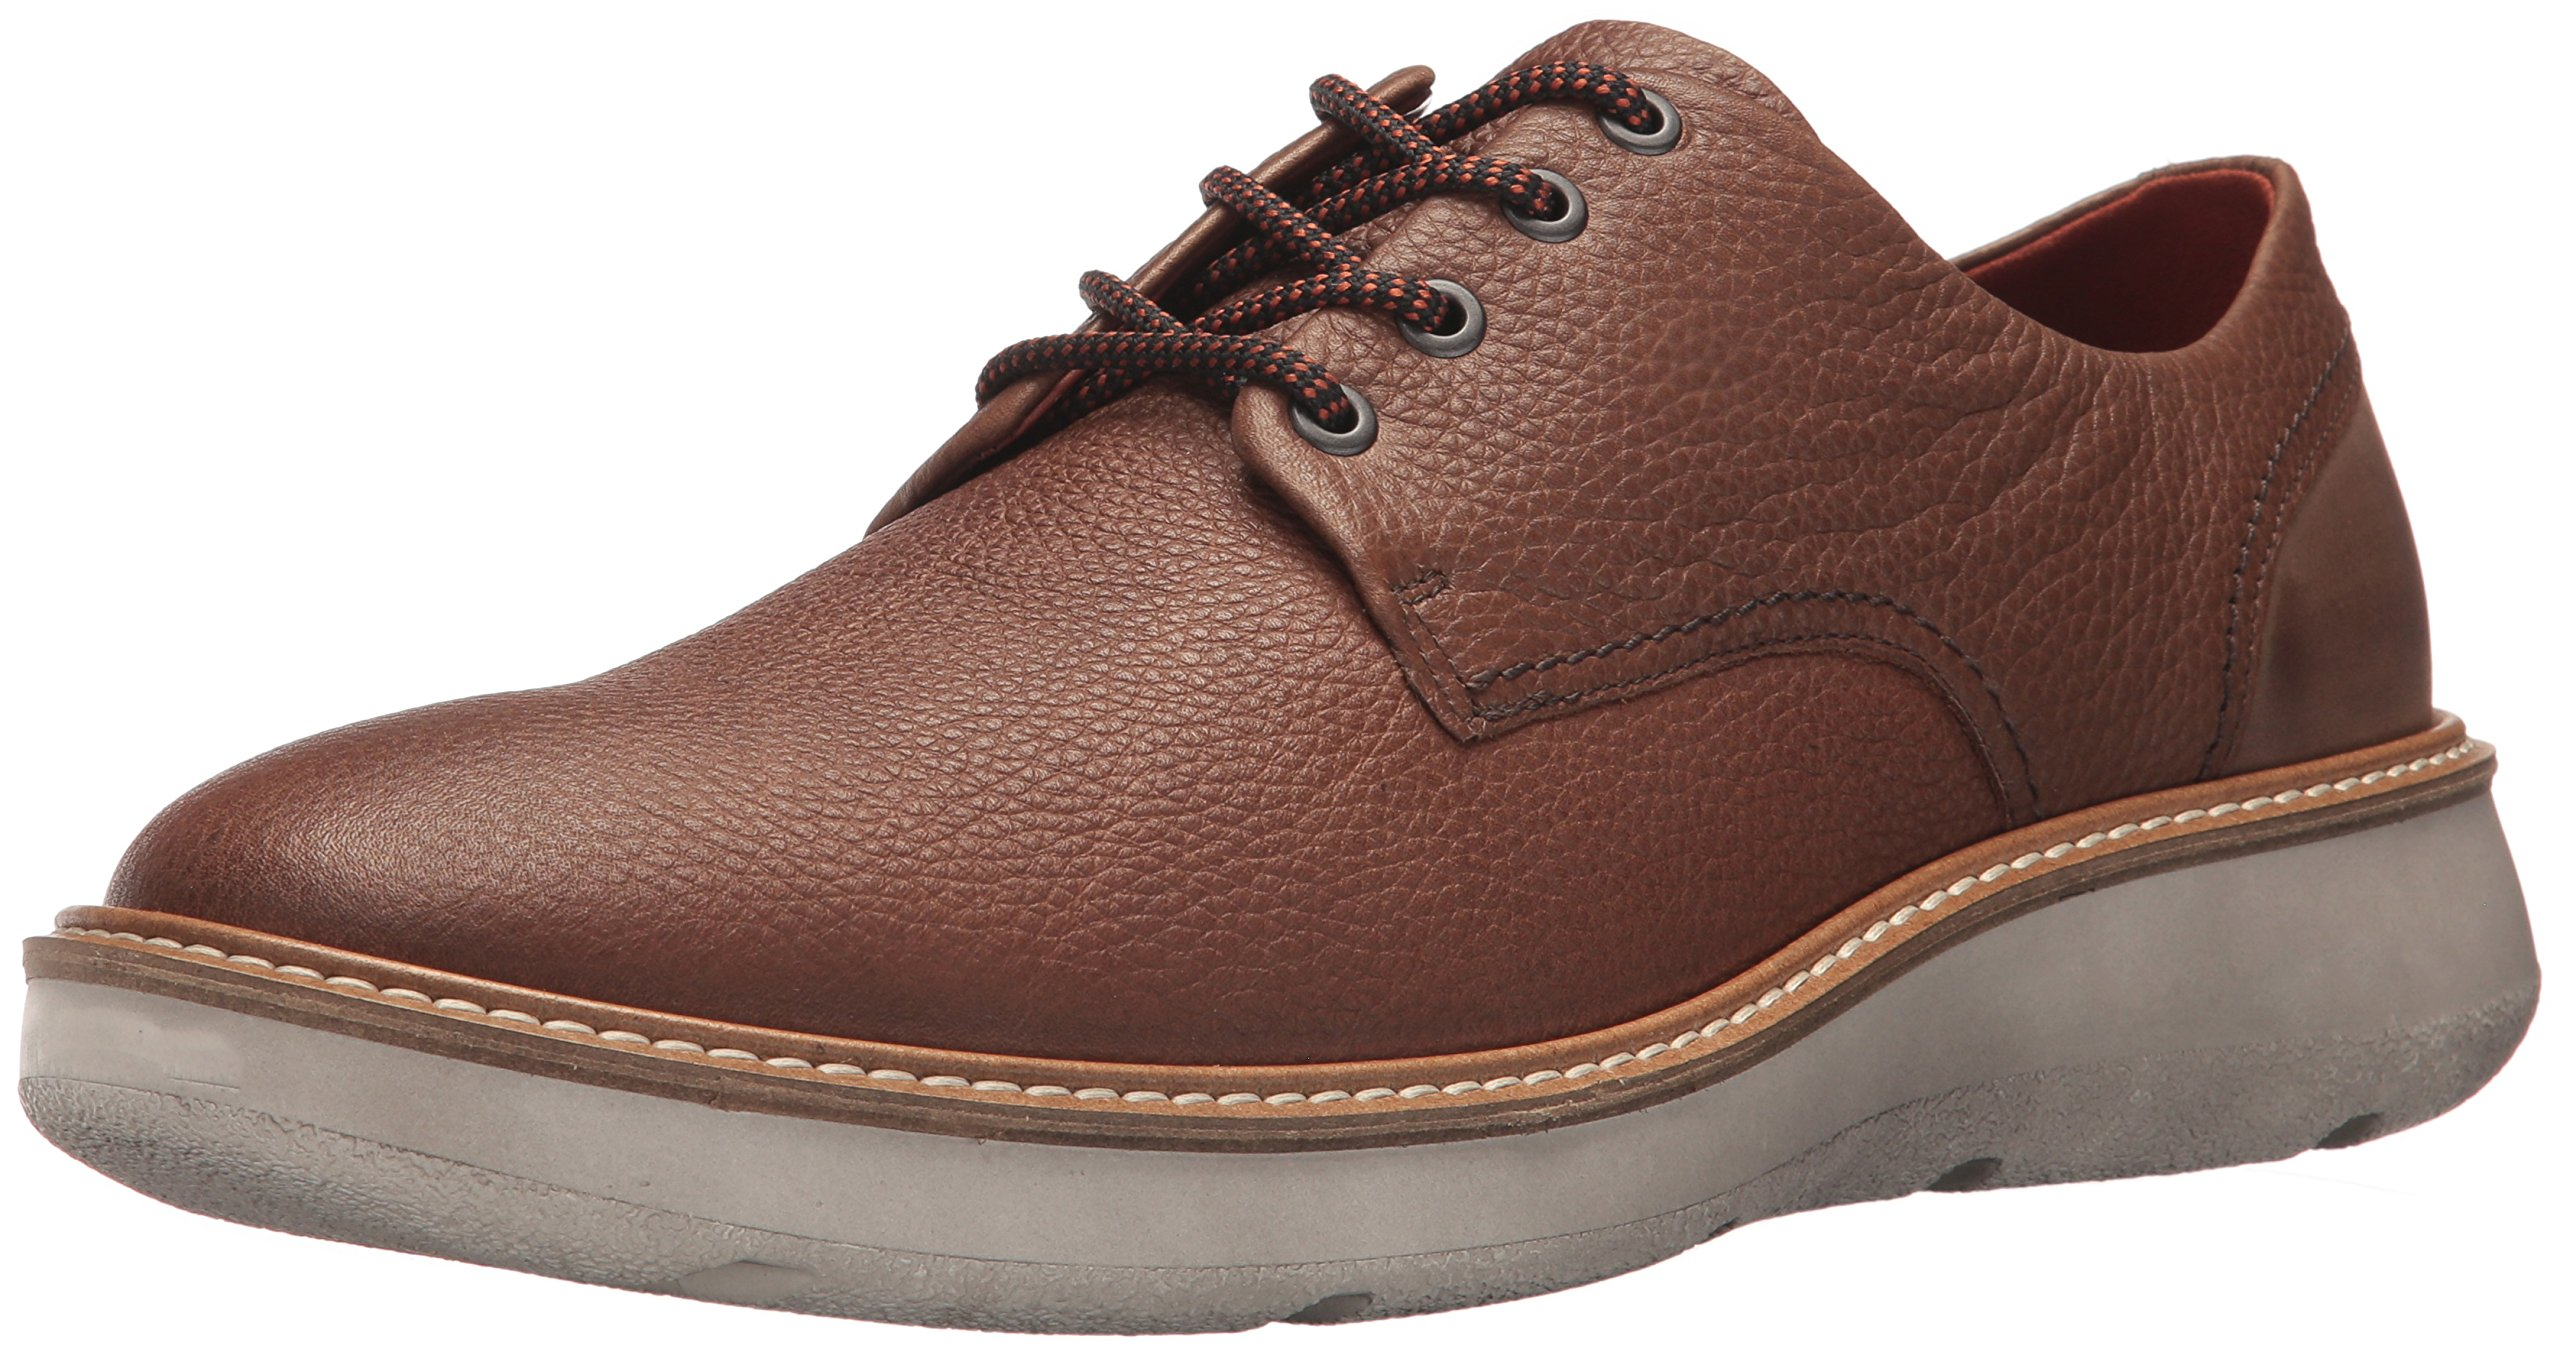 ECCO Men's Aurora Tie Oxford, Cocoa Brown/Cocoa Brown, 45 M EU/11-11.5 D(M) US